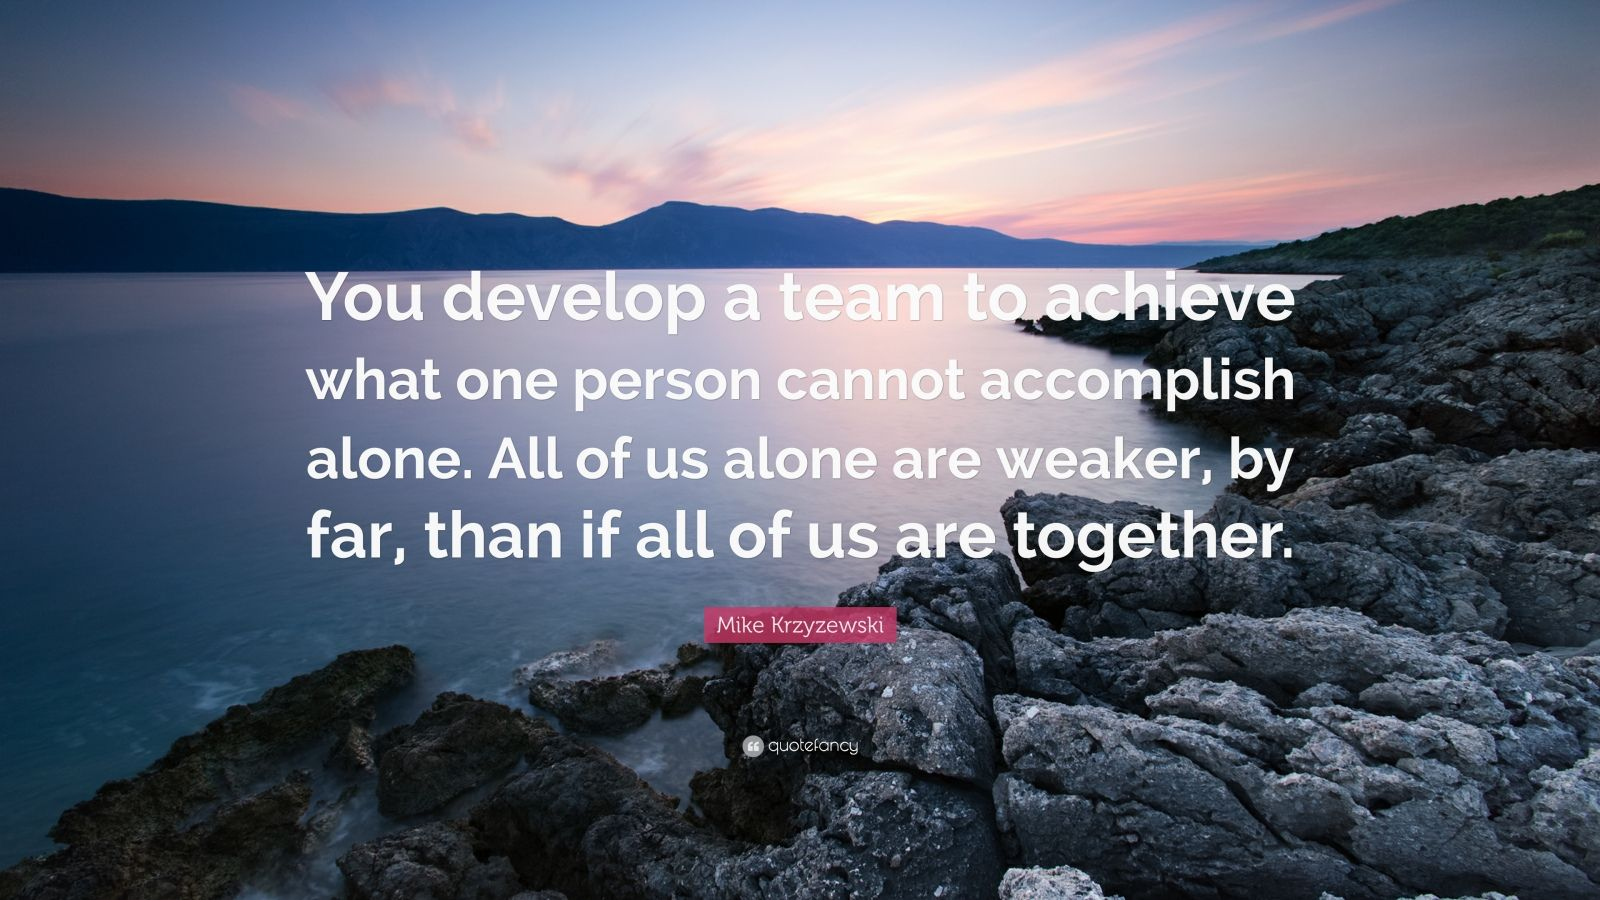 """Mike Krzyzewski Quote: """"You develop a team to achieve what one person cannot accomplish alone. All of us alone are weaker, by far, than if all of us are together."""""""